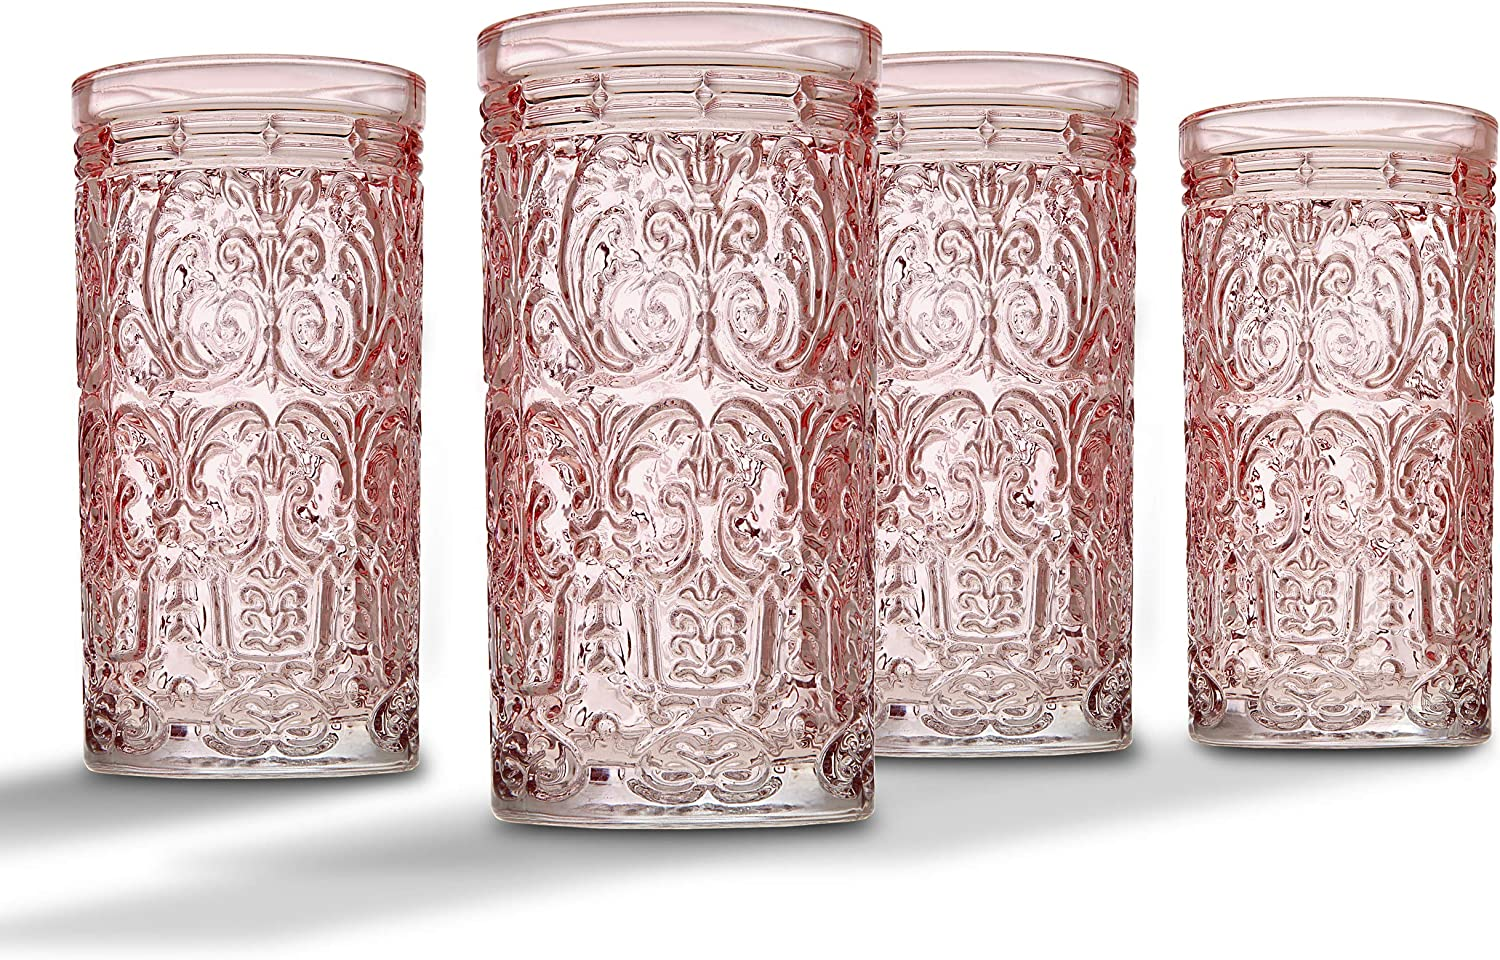 Jax Highball Beverage Glass Cup by Godinger - Pink - Set of 4